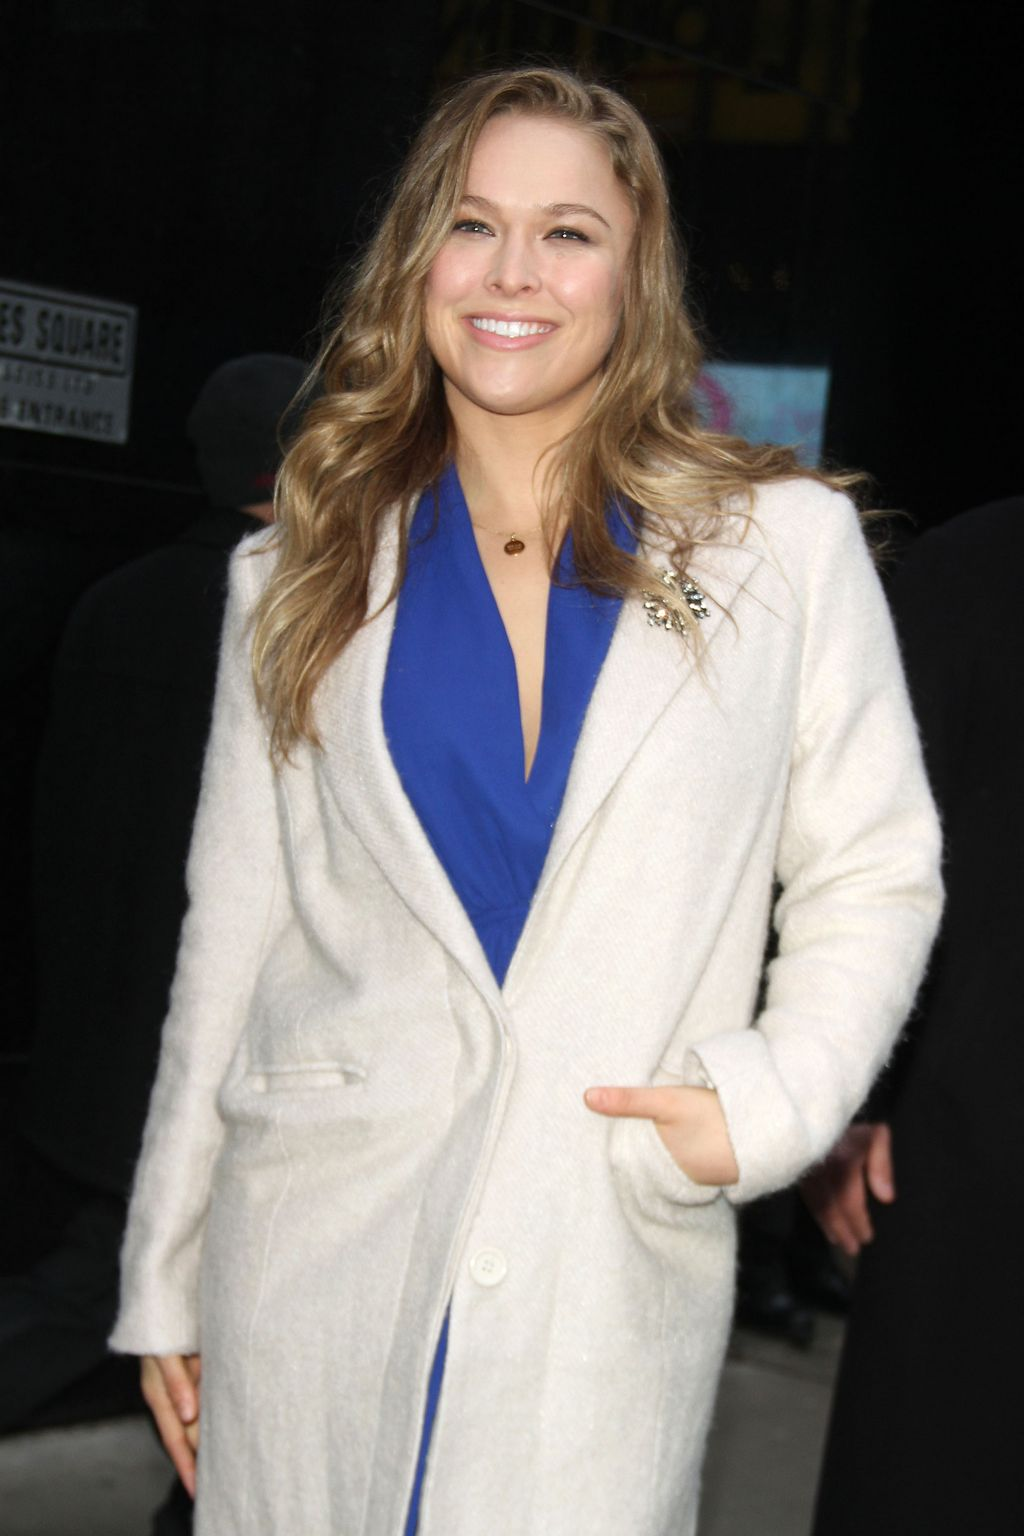 Ronda Rousey at ABCs Good Morning America-1